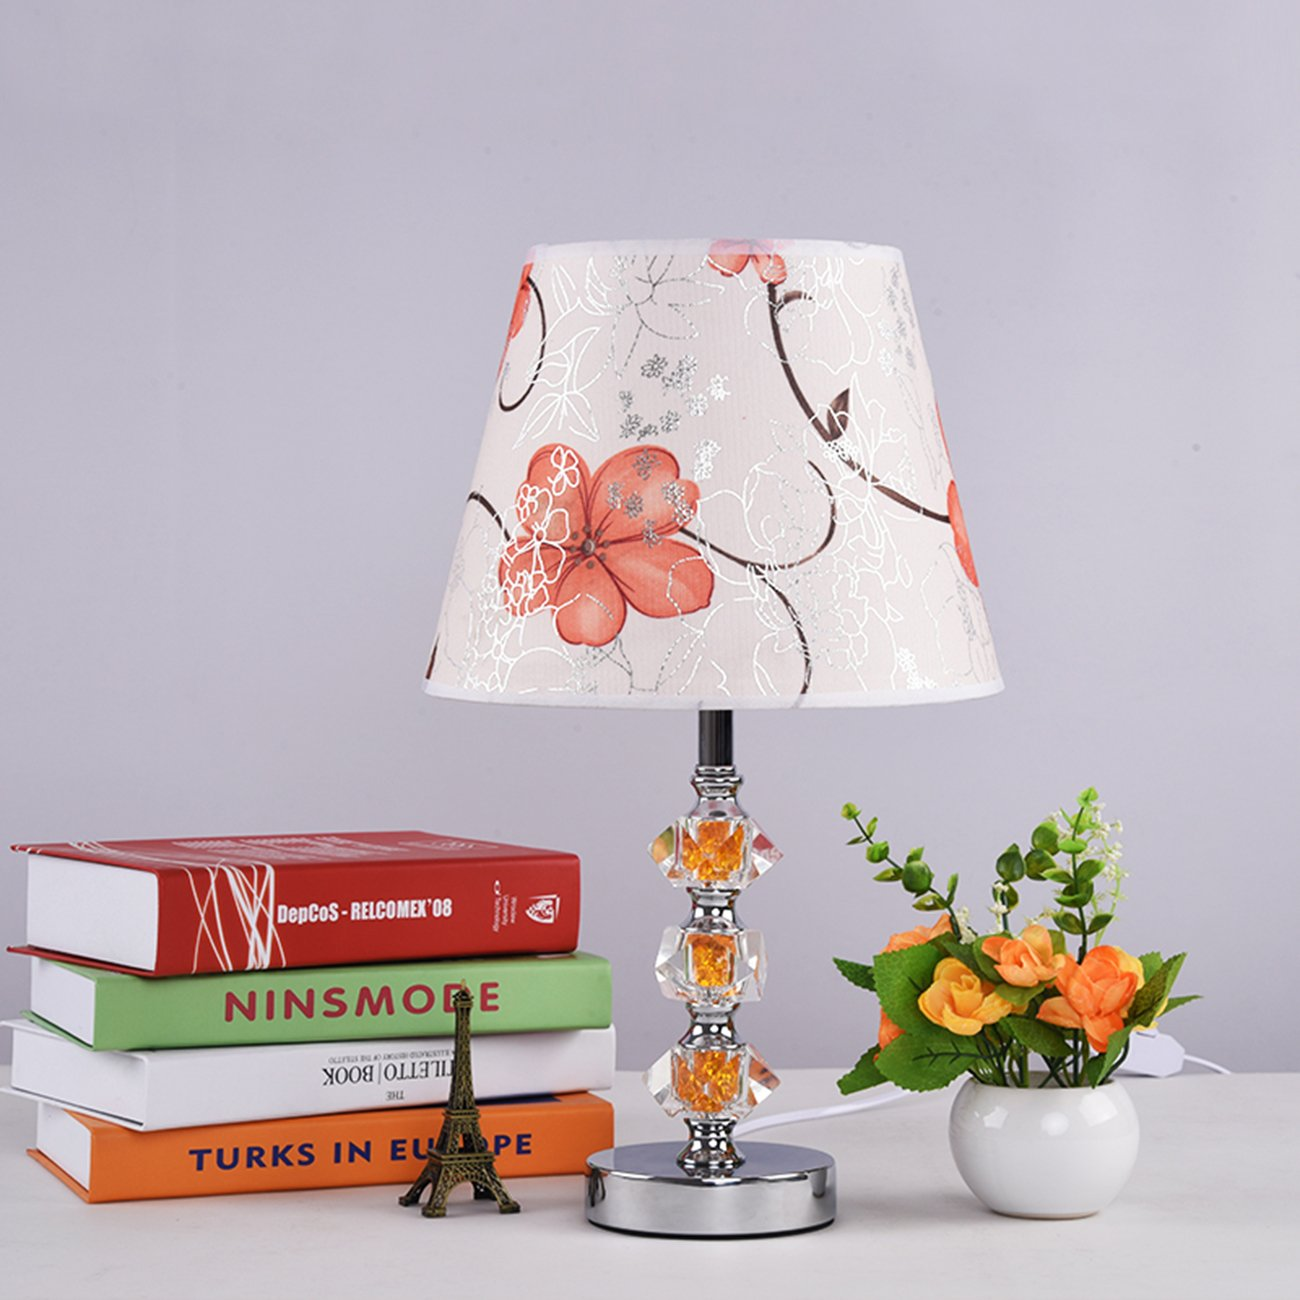 Garwarm Crystal Flower Table Lamps For Living Room Bedroom,2543CM/1017 Inch WH